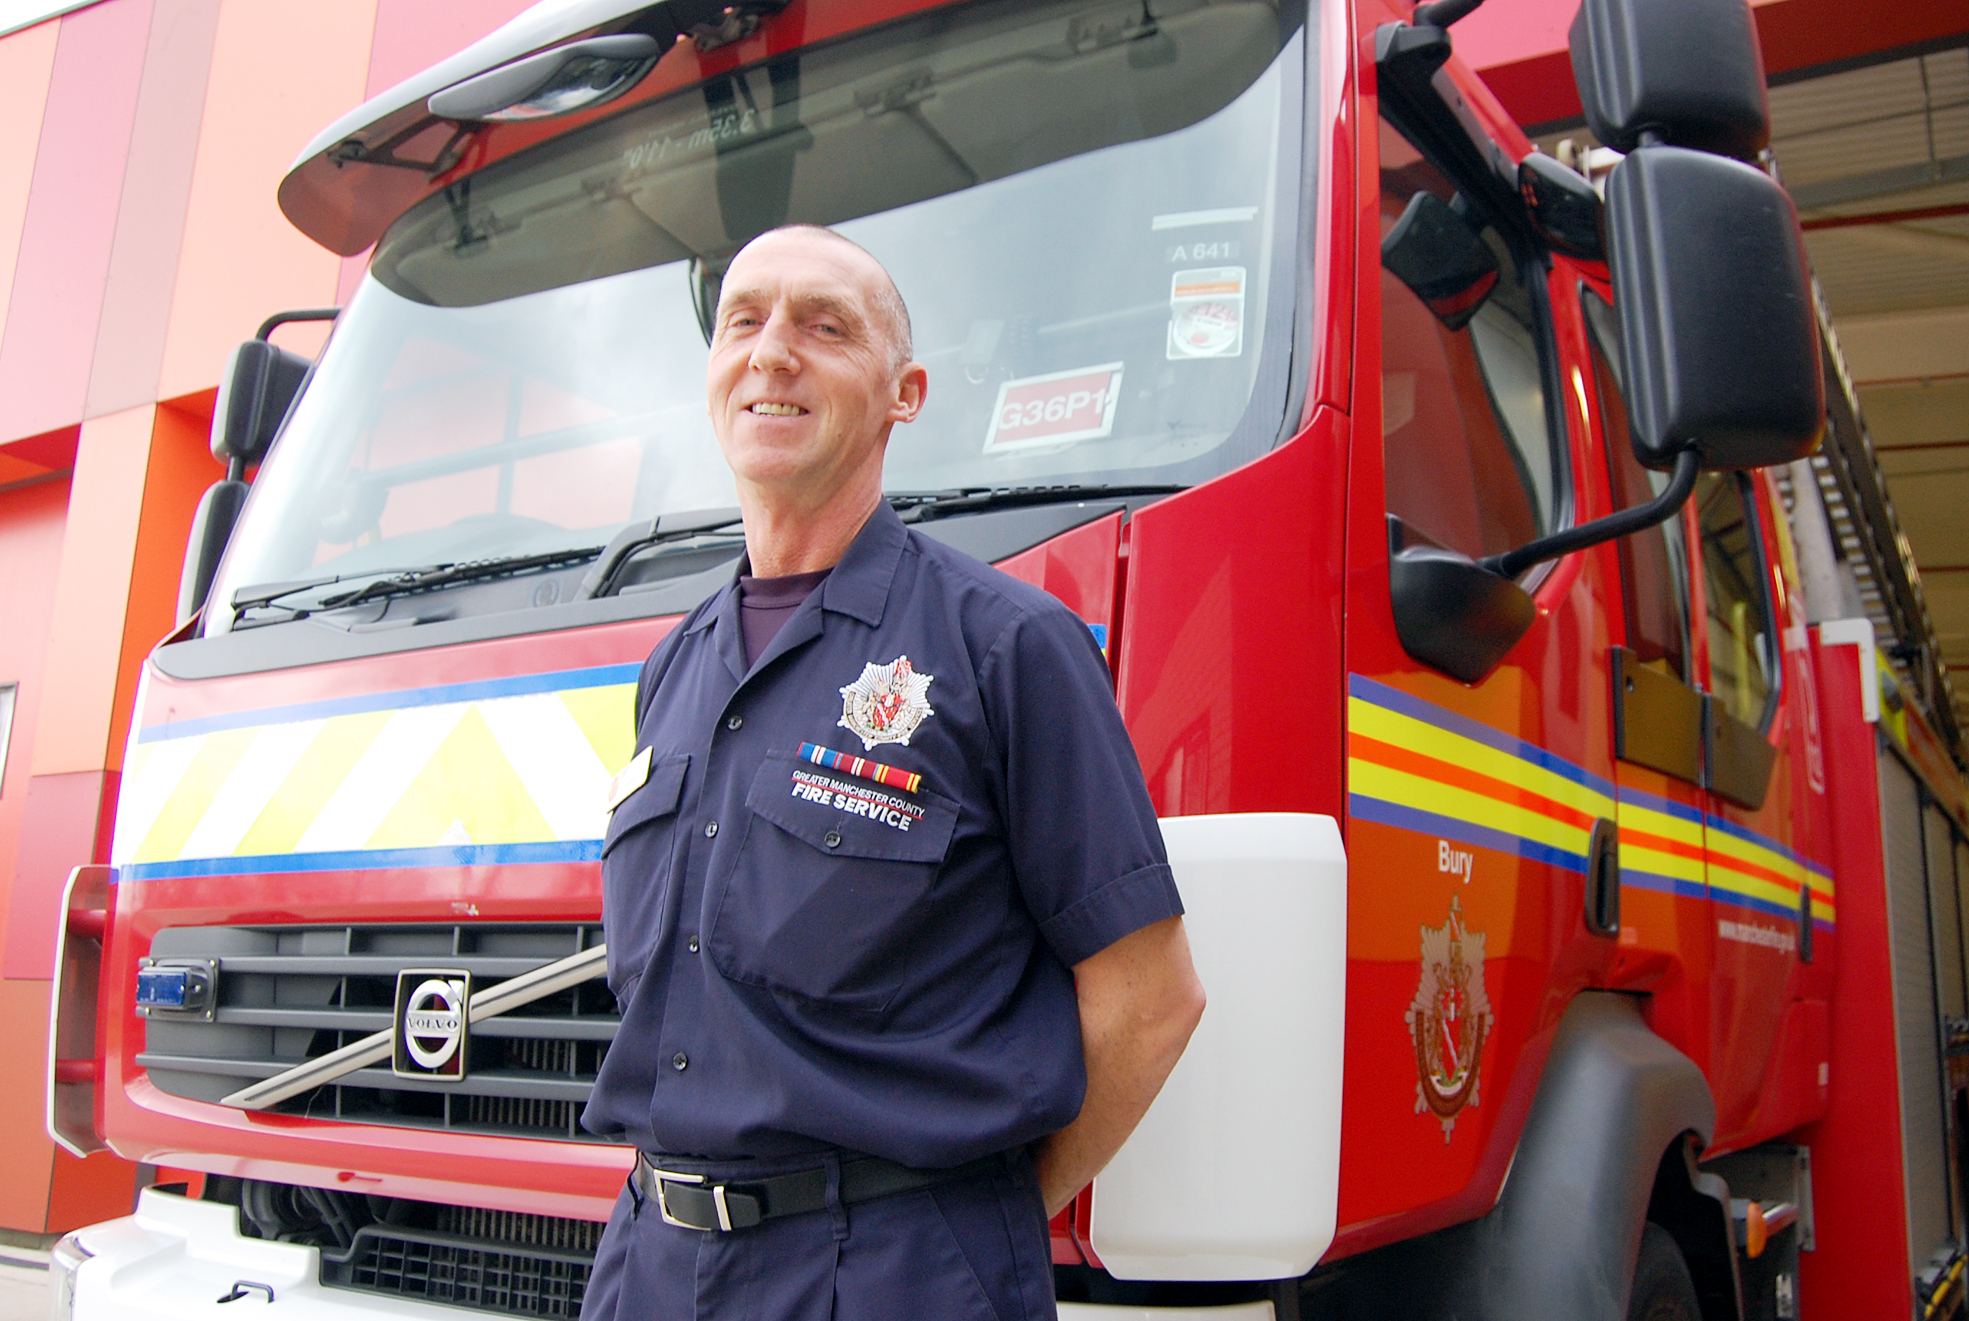 Firefighter keith Hadley